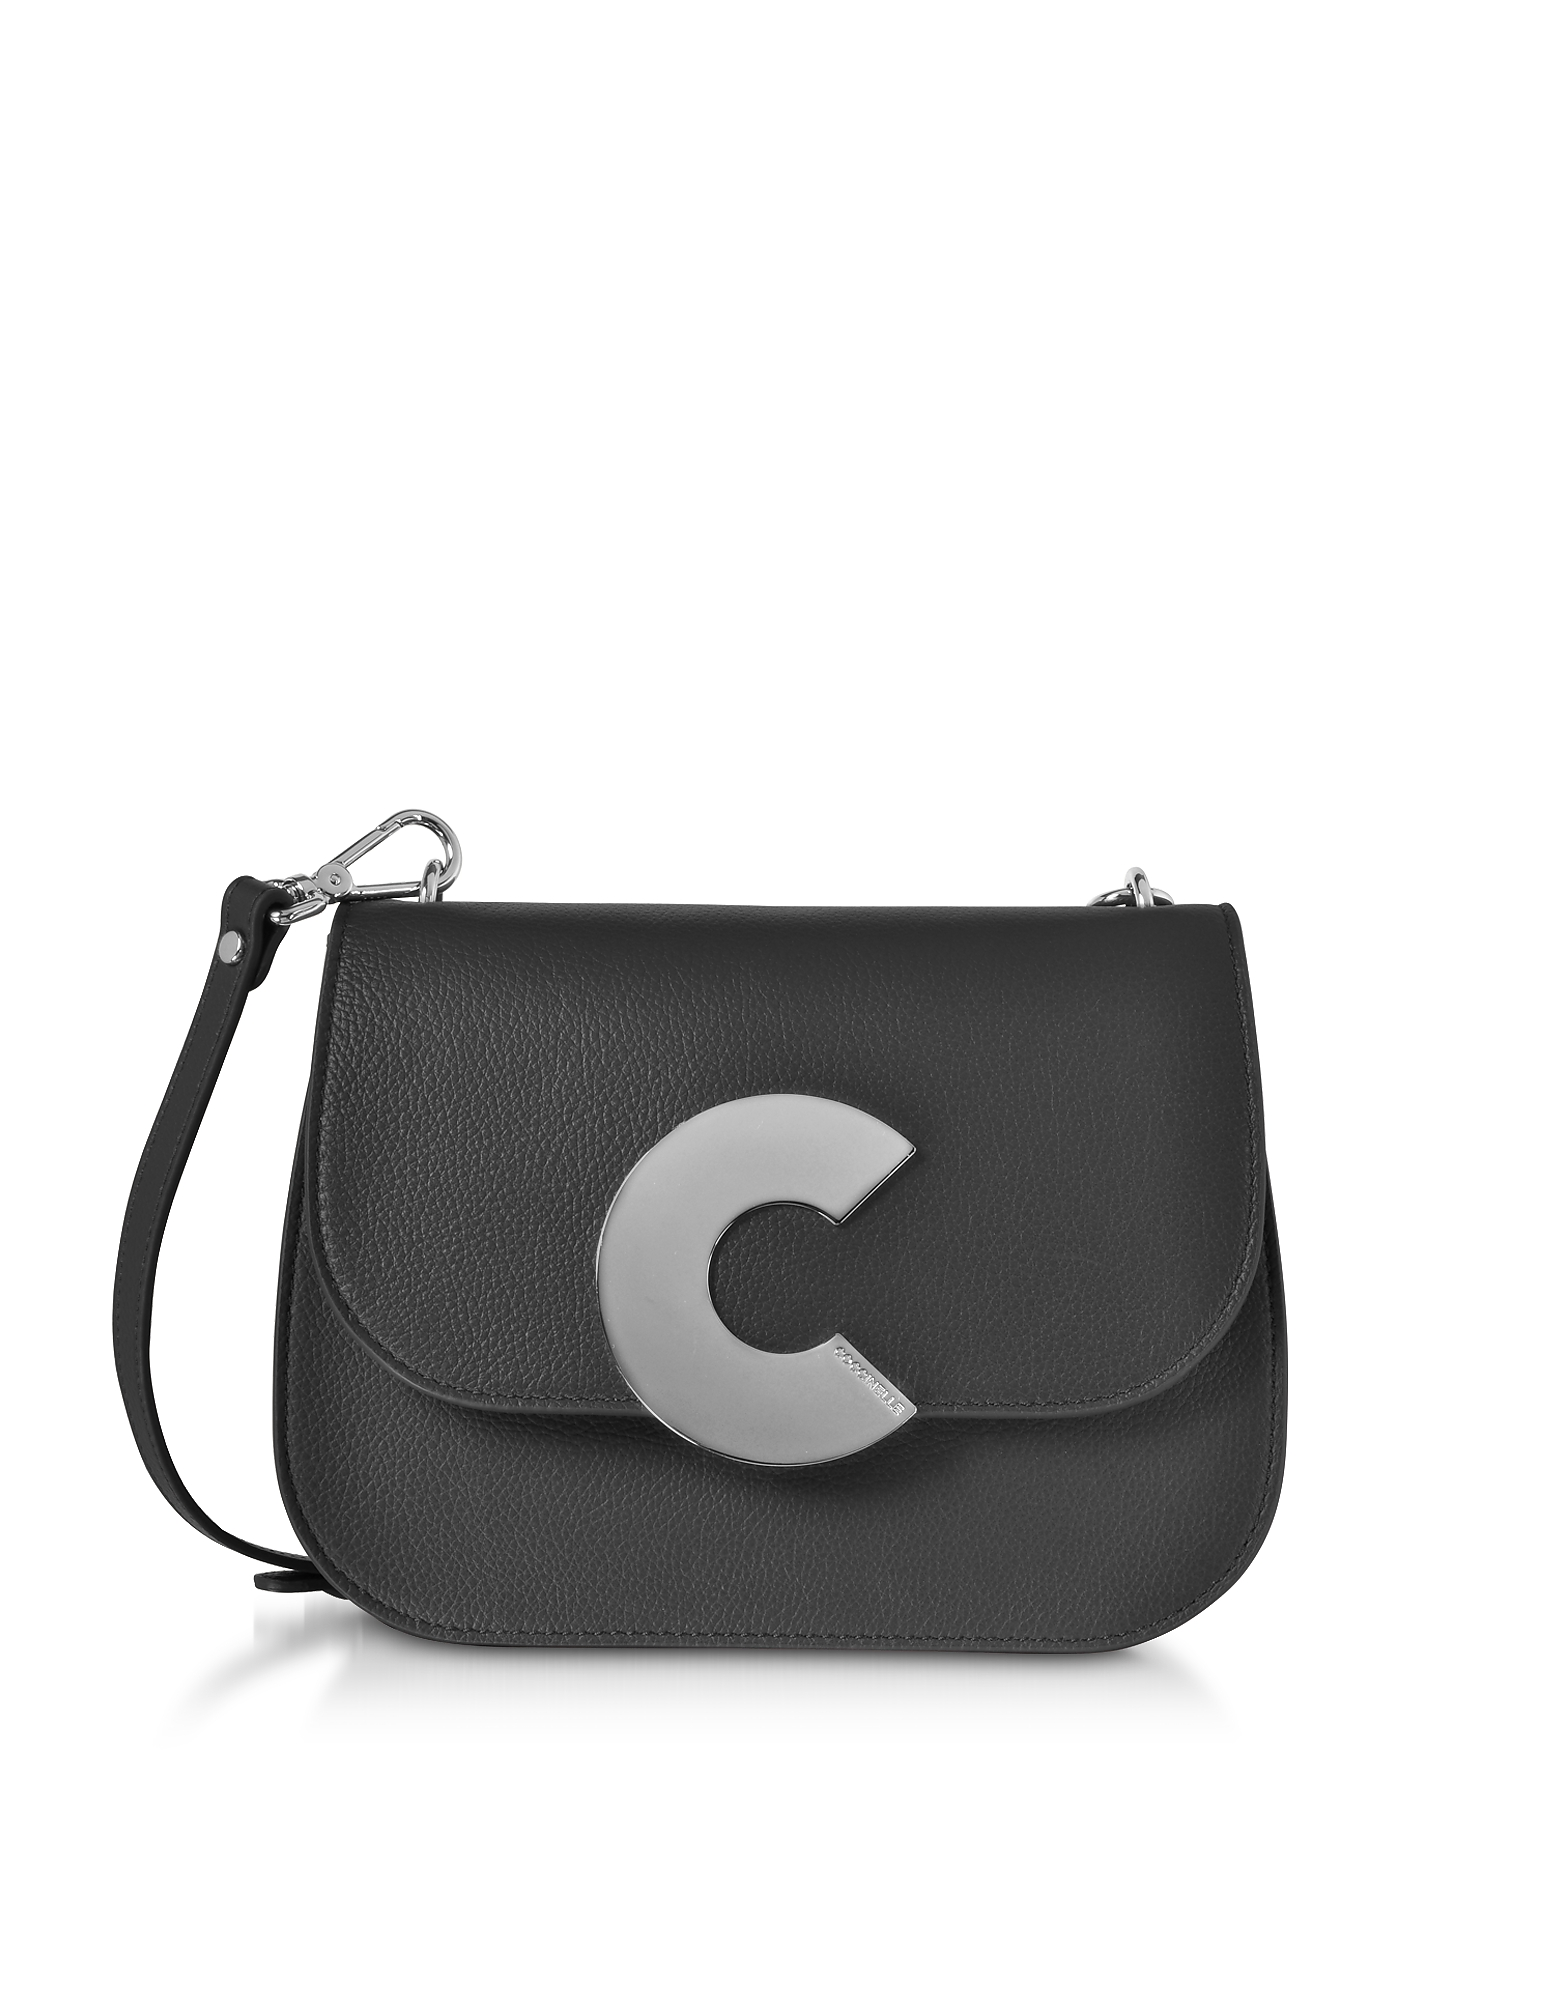 Craquante Grained Leather Medium Crossbody Bag